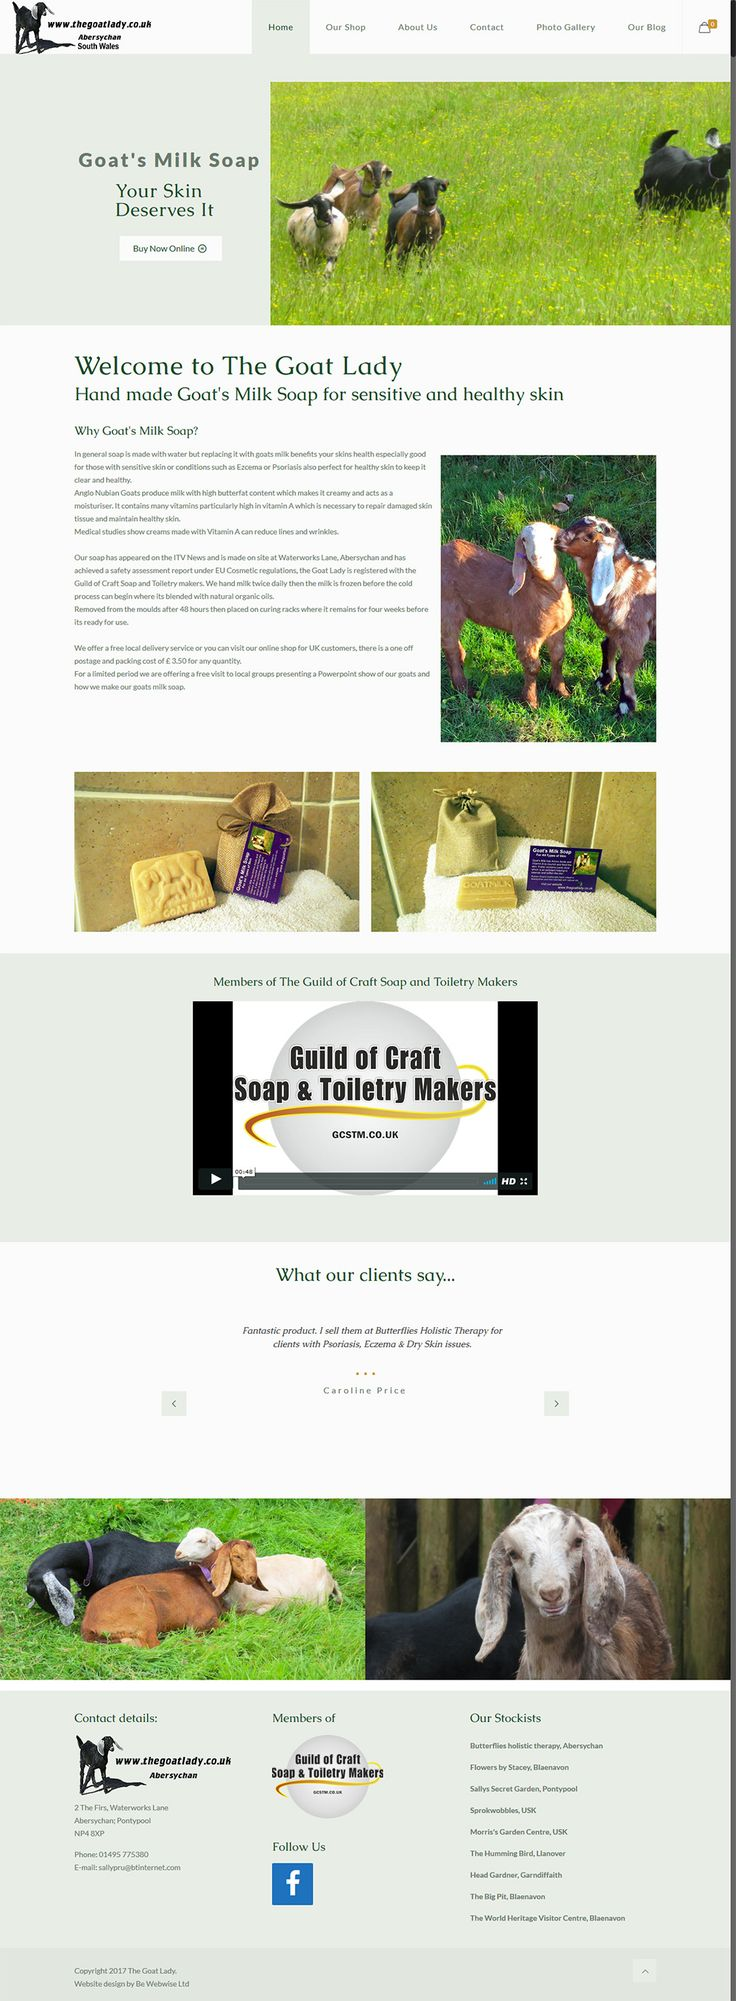 Ecommerce website for Goats milk soap